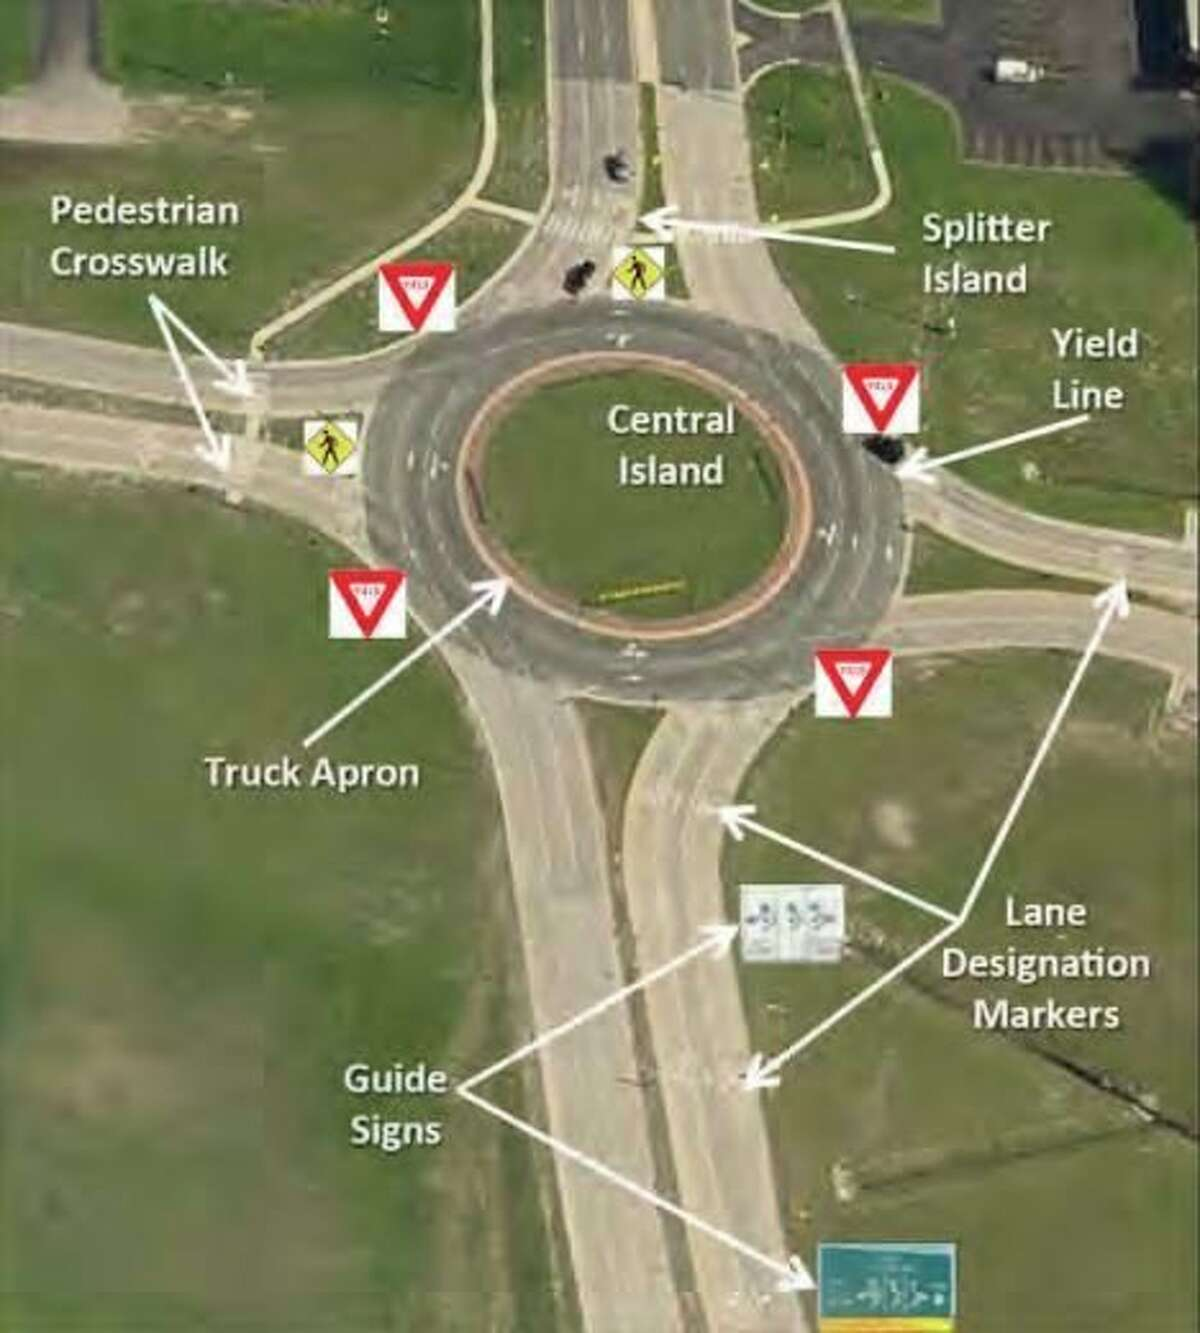 This image shows the layout of a typical roundabout. (Courtesy graphic/Michigan Department of Transportation)